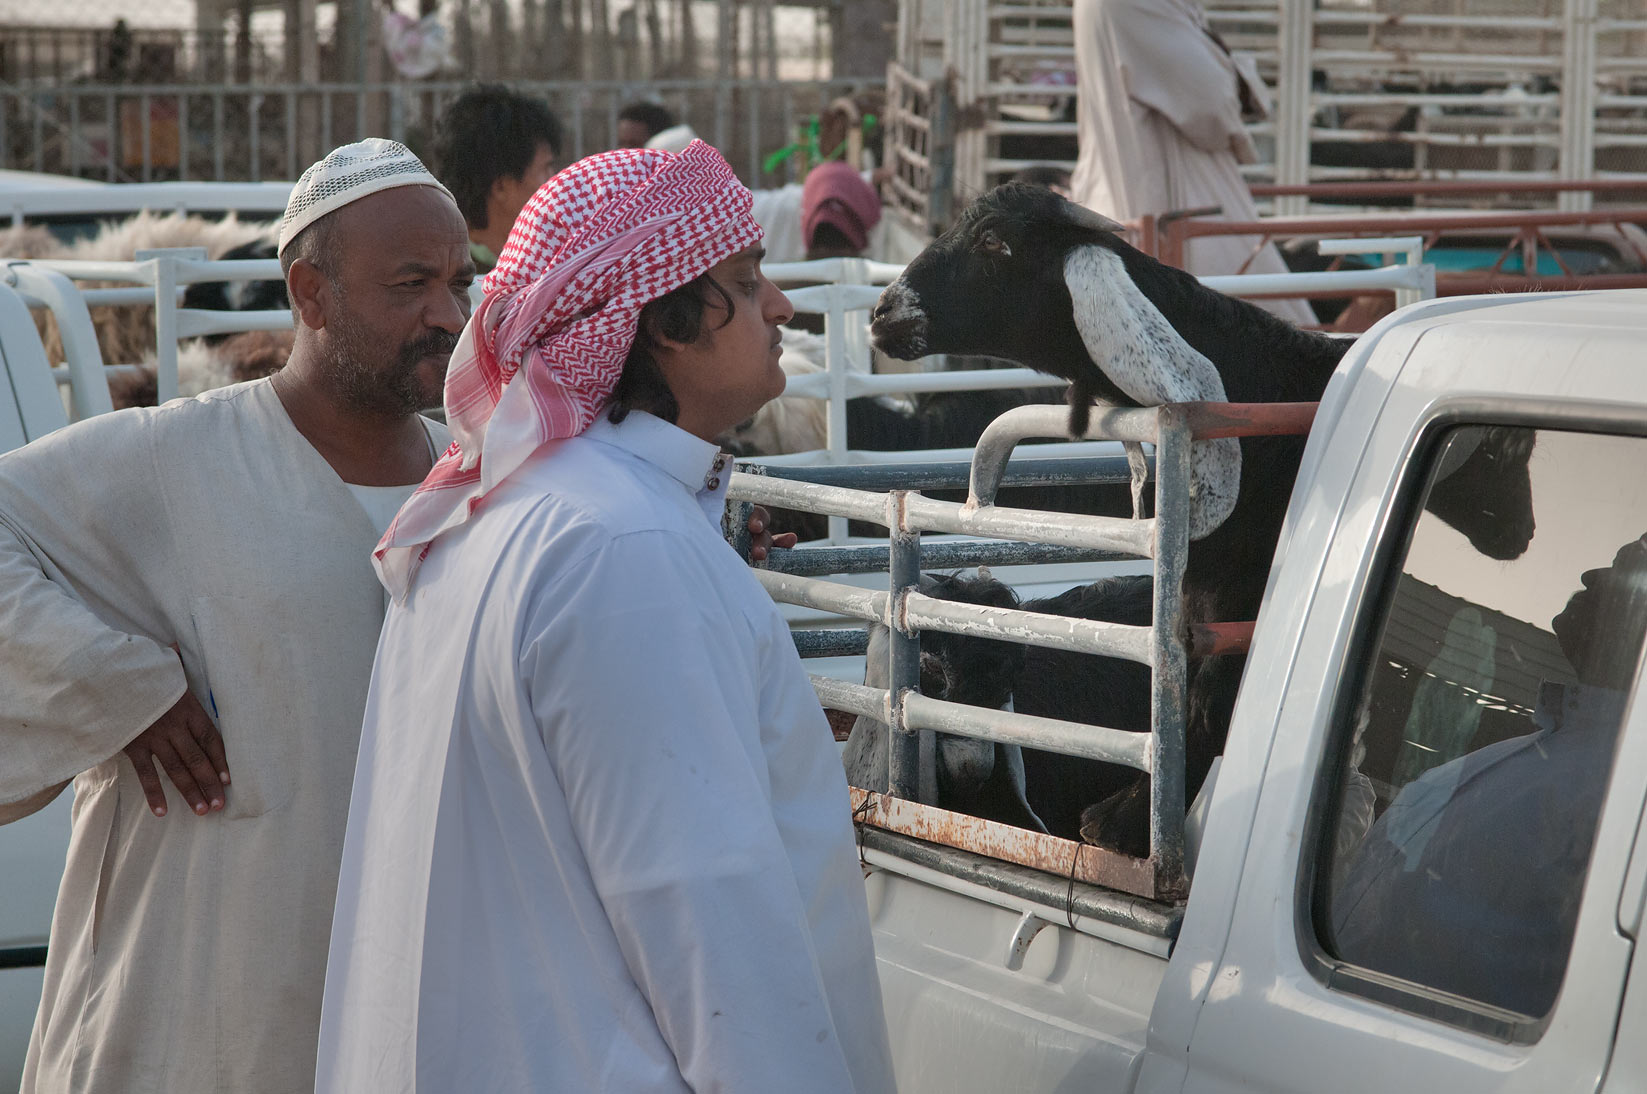 Looking on a black goat in a truck in Sheep Market, Wholesale Market area. Doha, Qatar